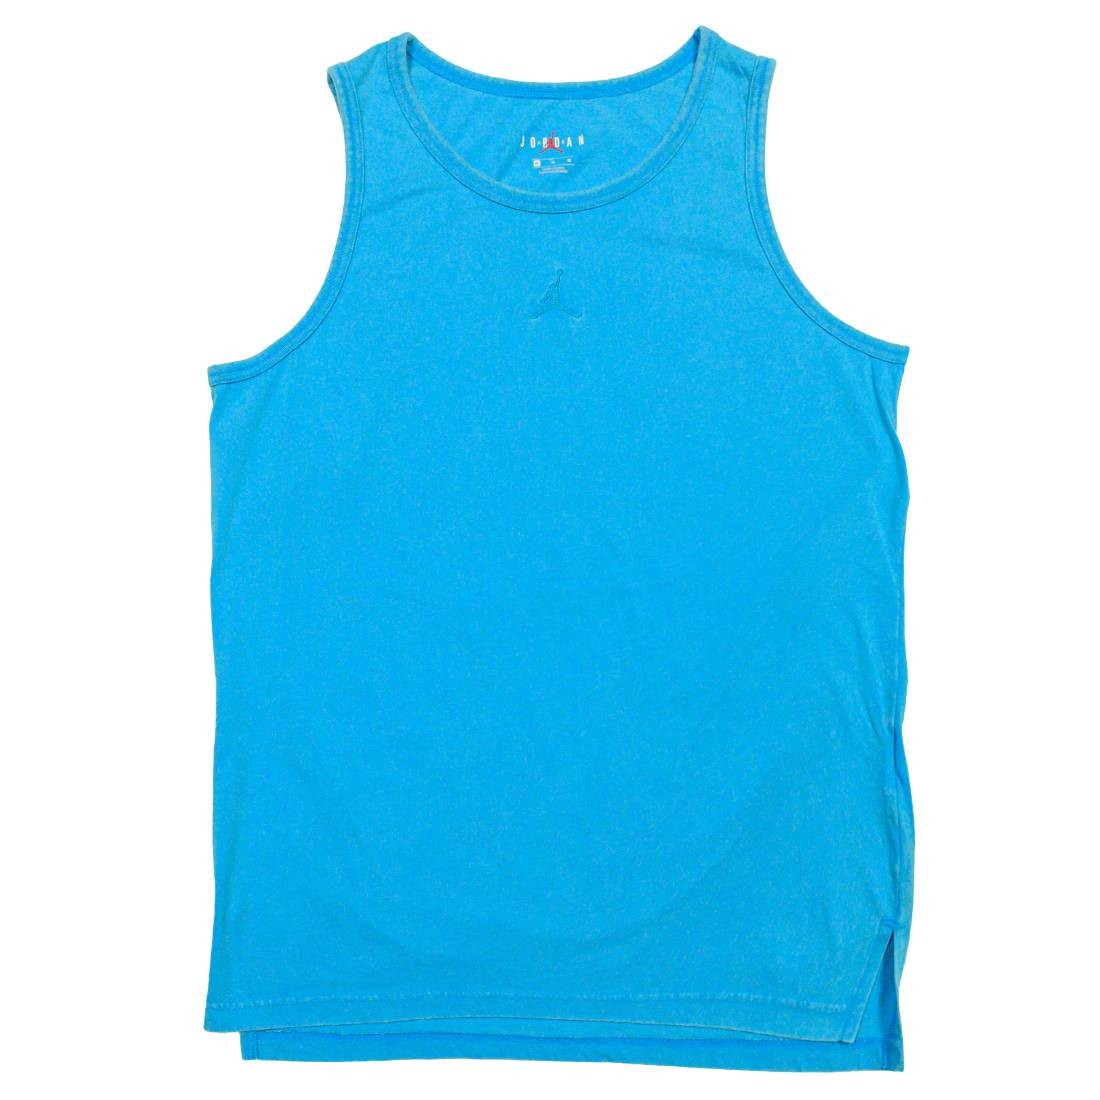 Jordan Men Tank Top (equator blue)